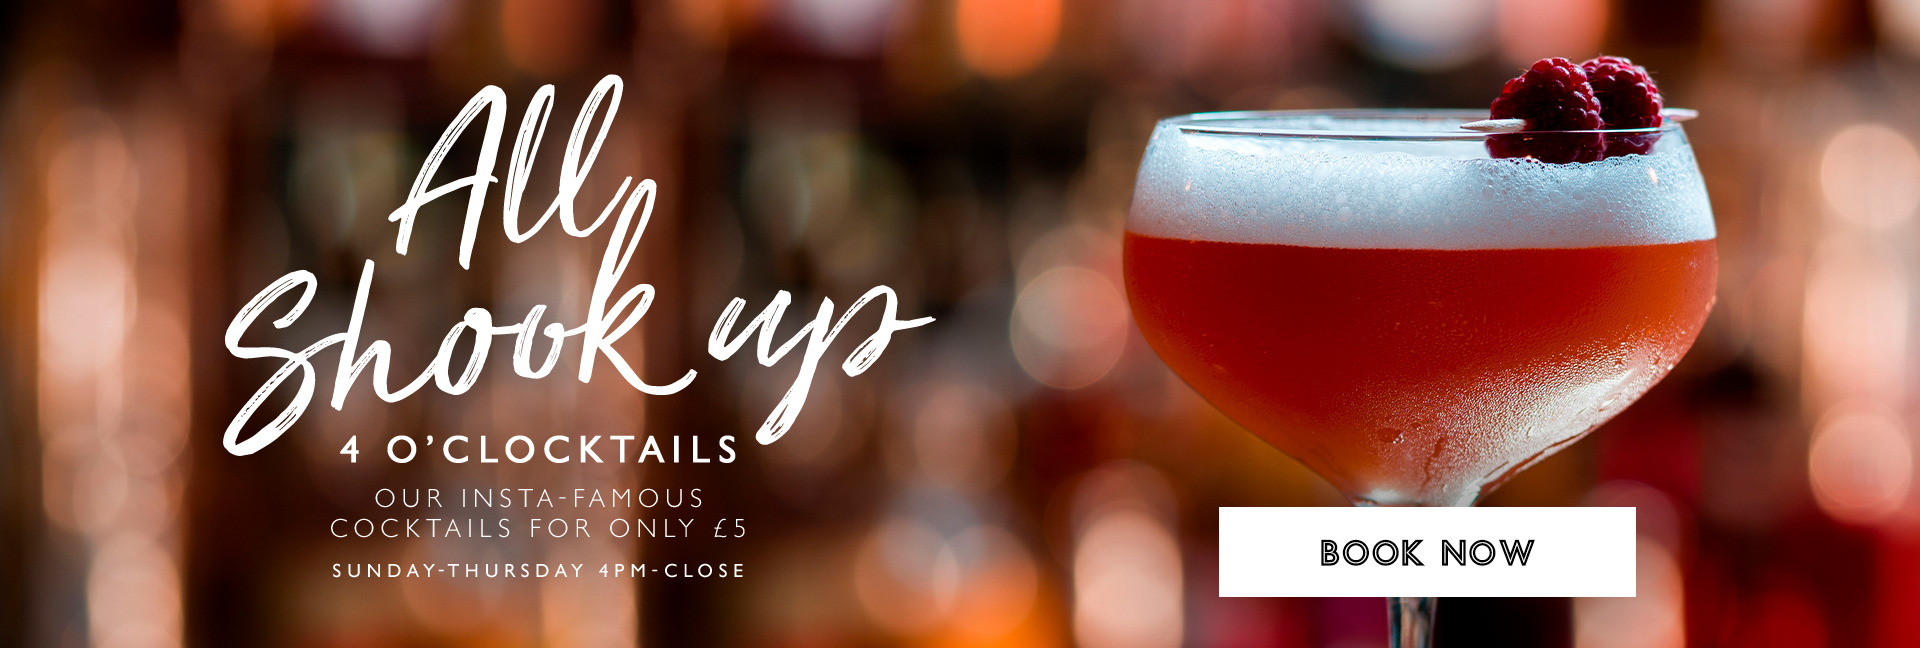 4 O'clocktails at All Bar One Cambridge - Book now